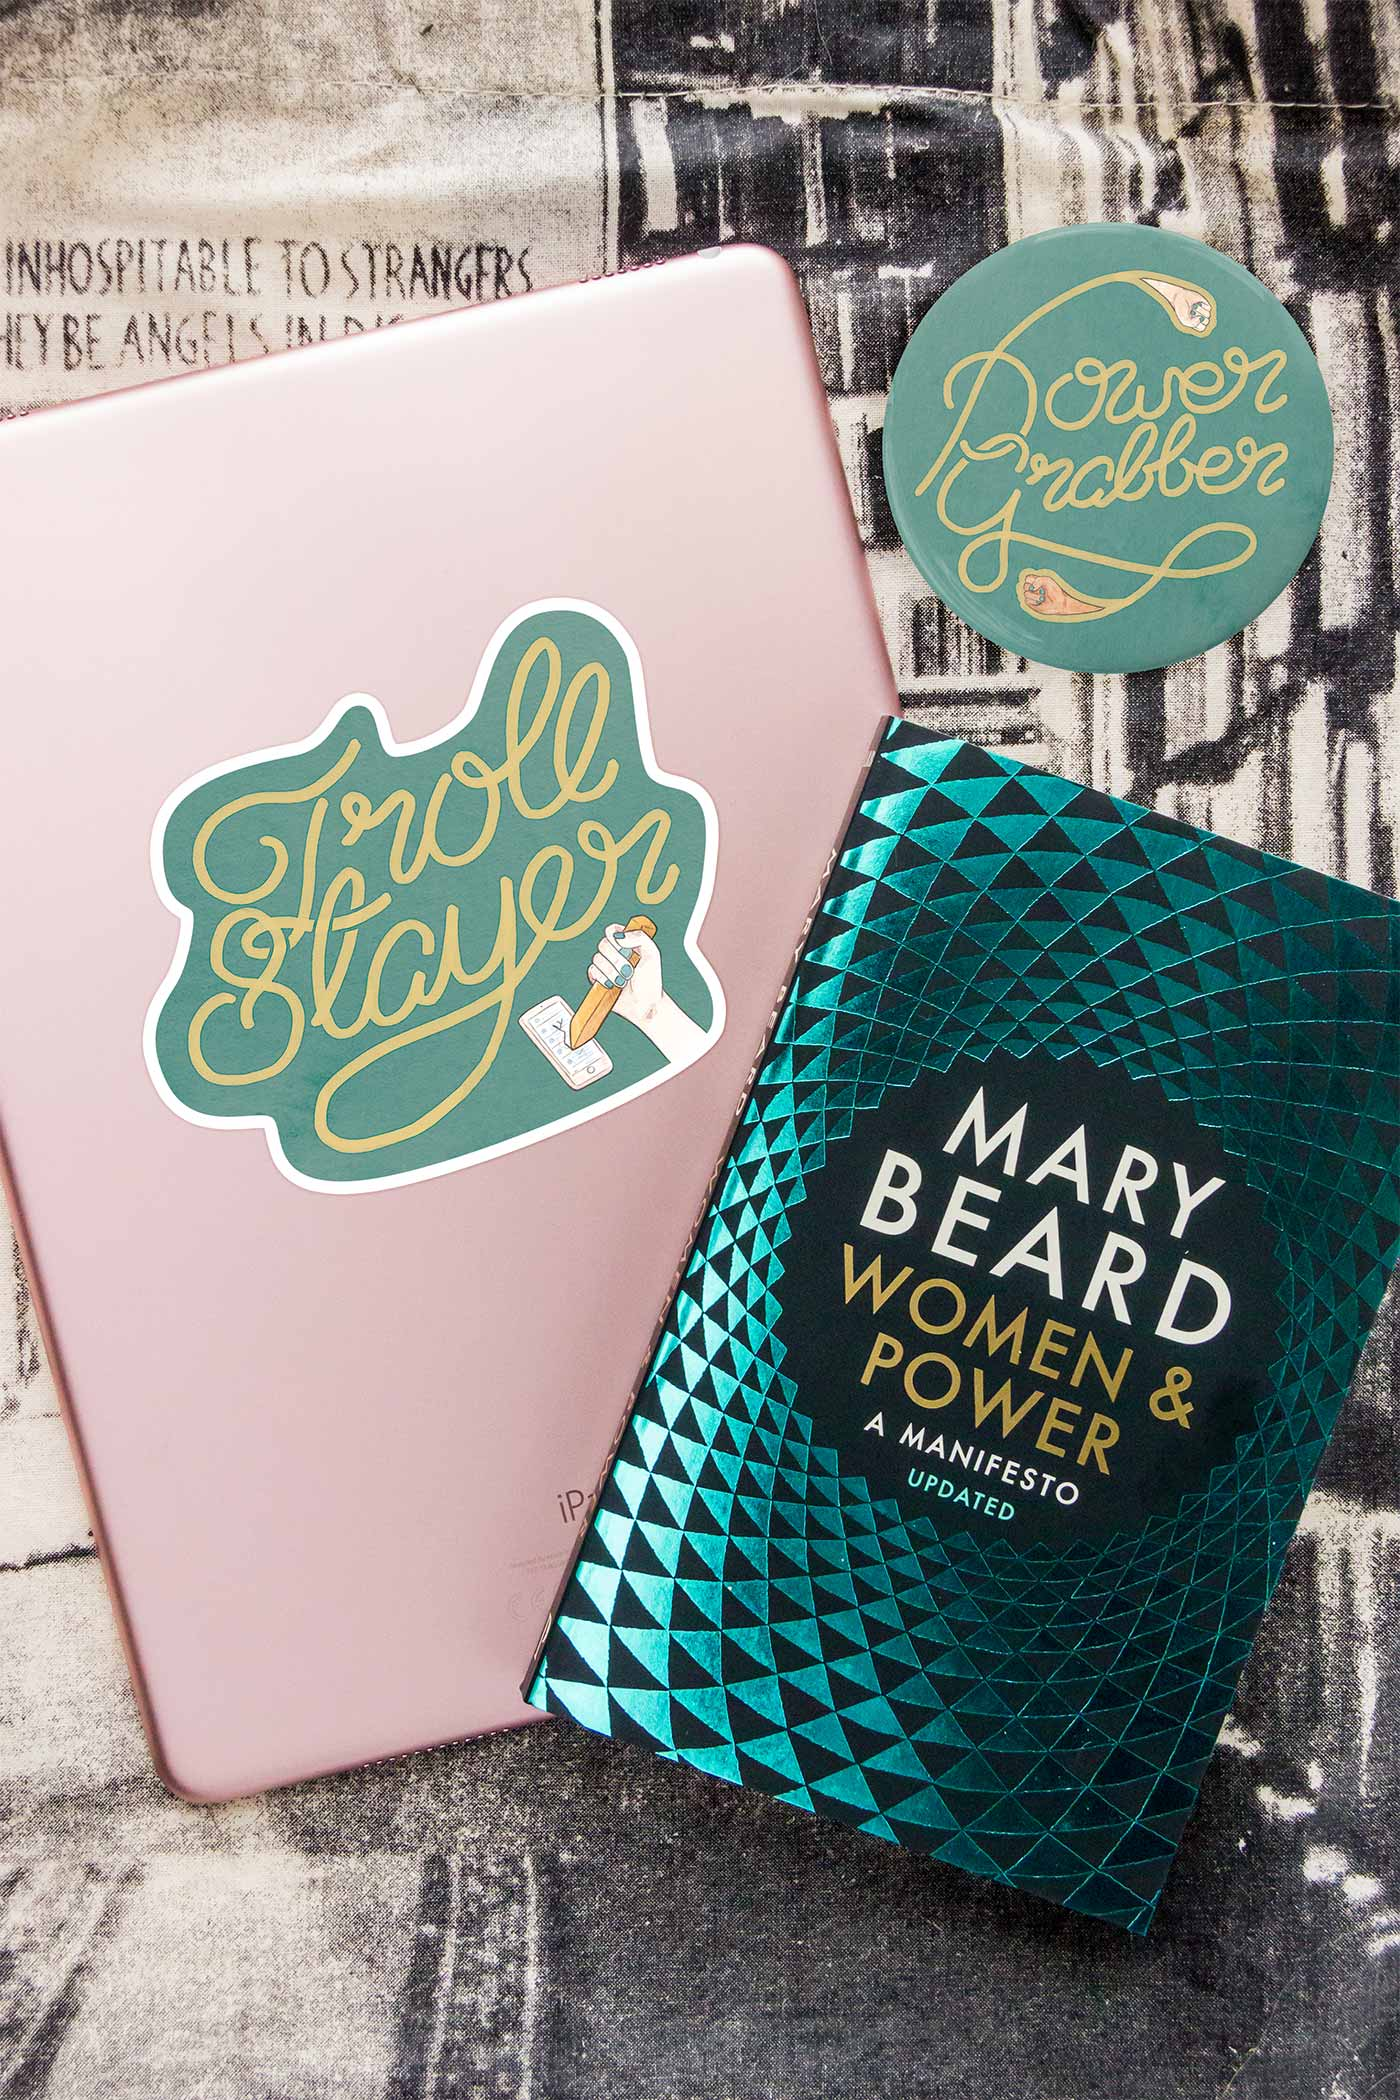 Mary Beard's Power & Women Book with Power Grabber Pocket Mirror & Troll Slayer Sticker